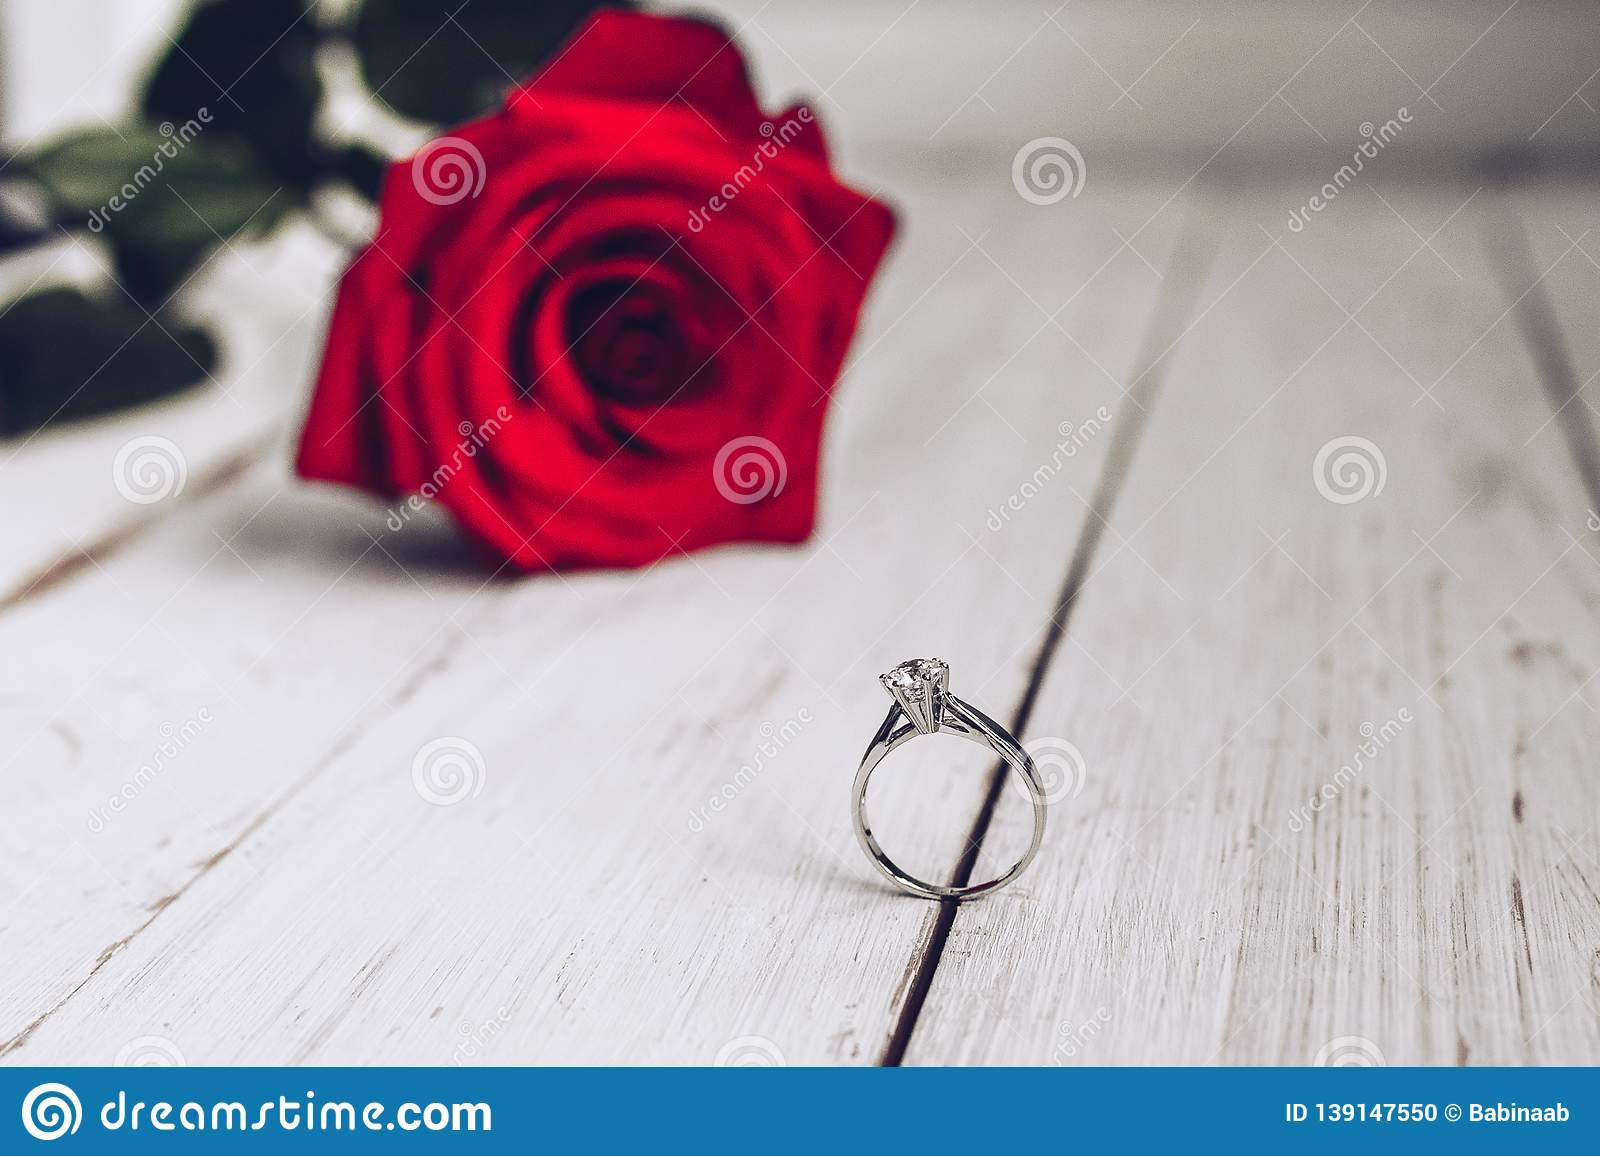 Red rose, marriage proposal, silver ring, engagement